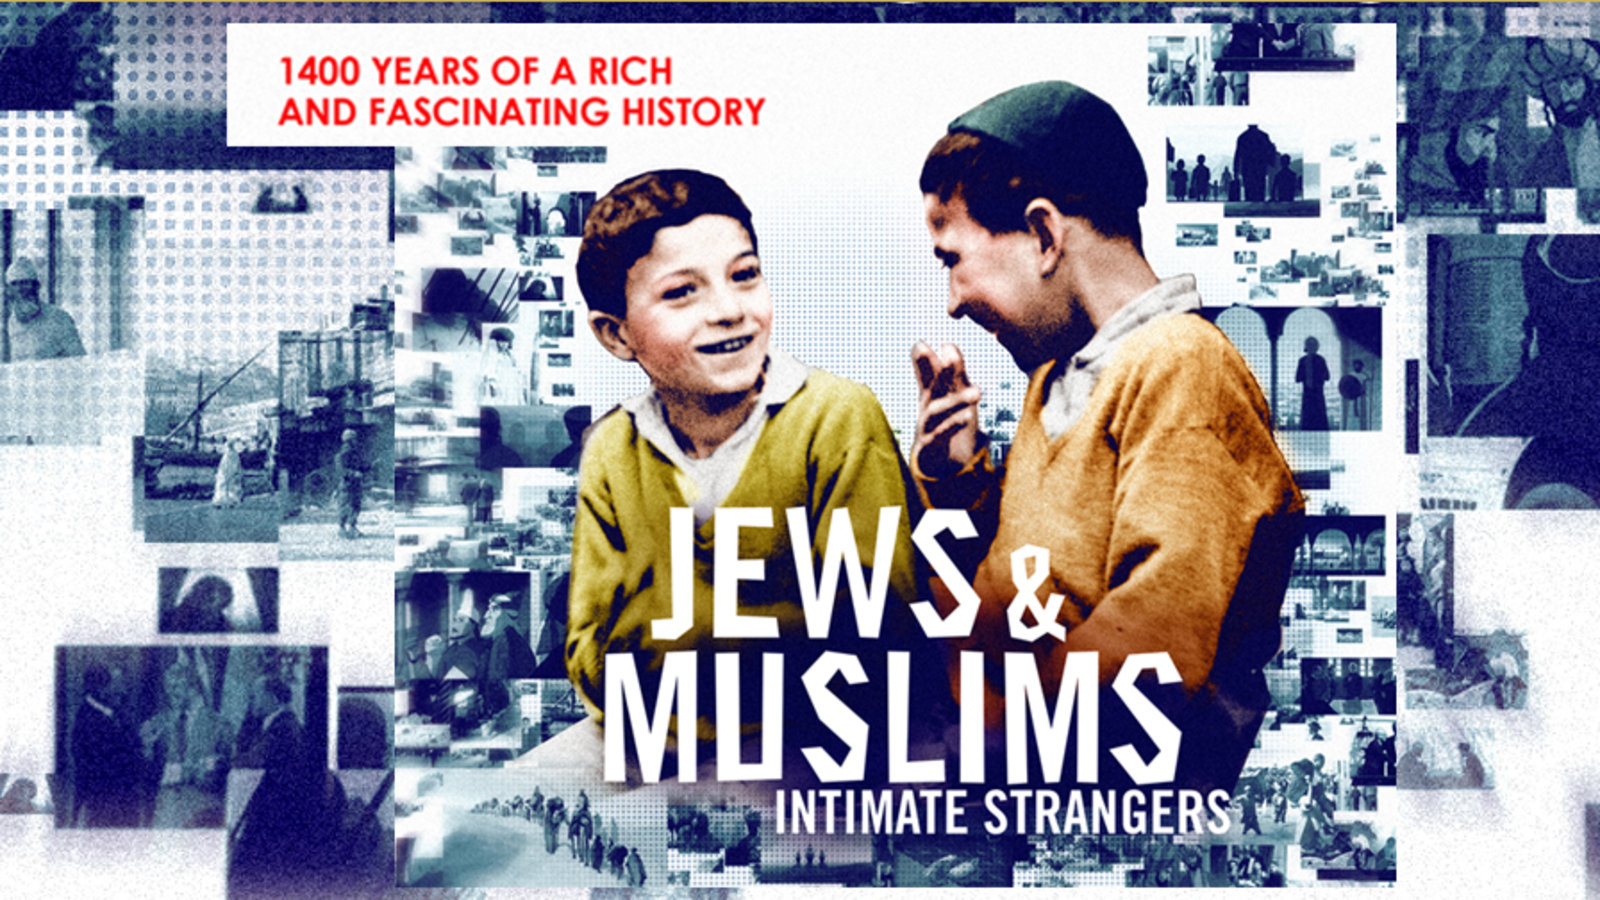 Jews & Muslims: Intimate Strangers - 4 Part Series